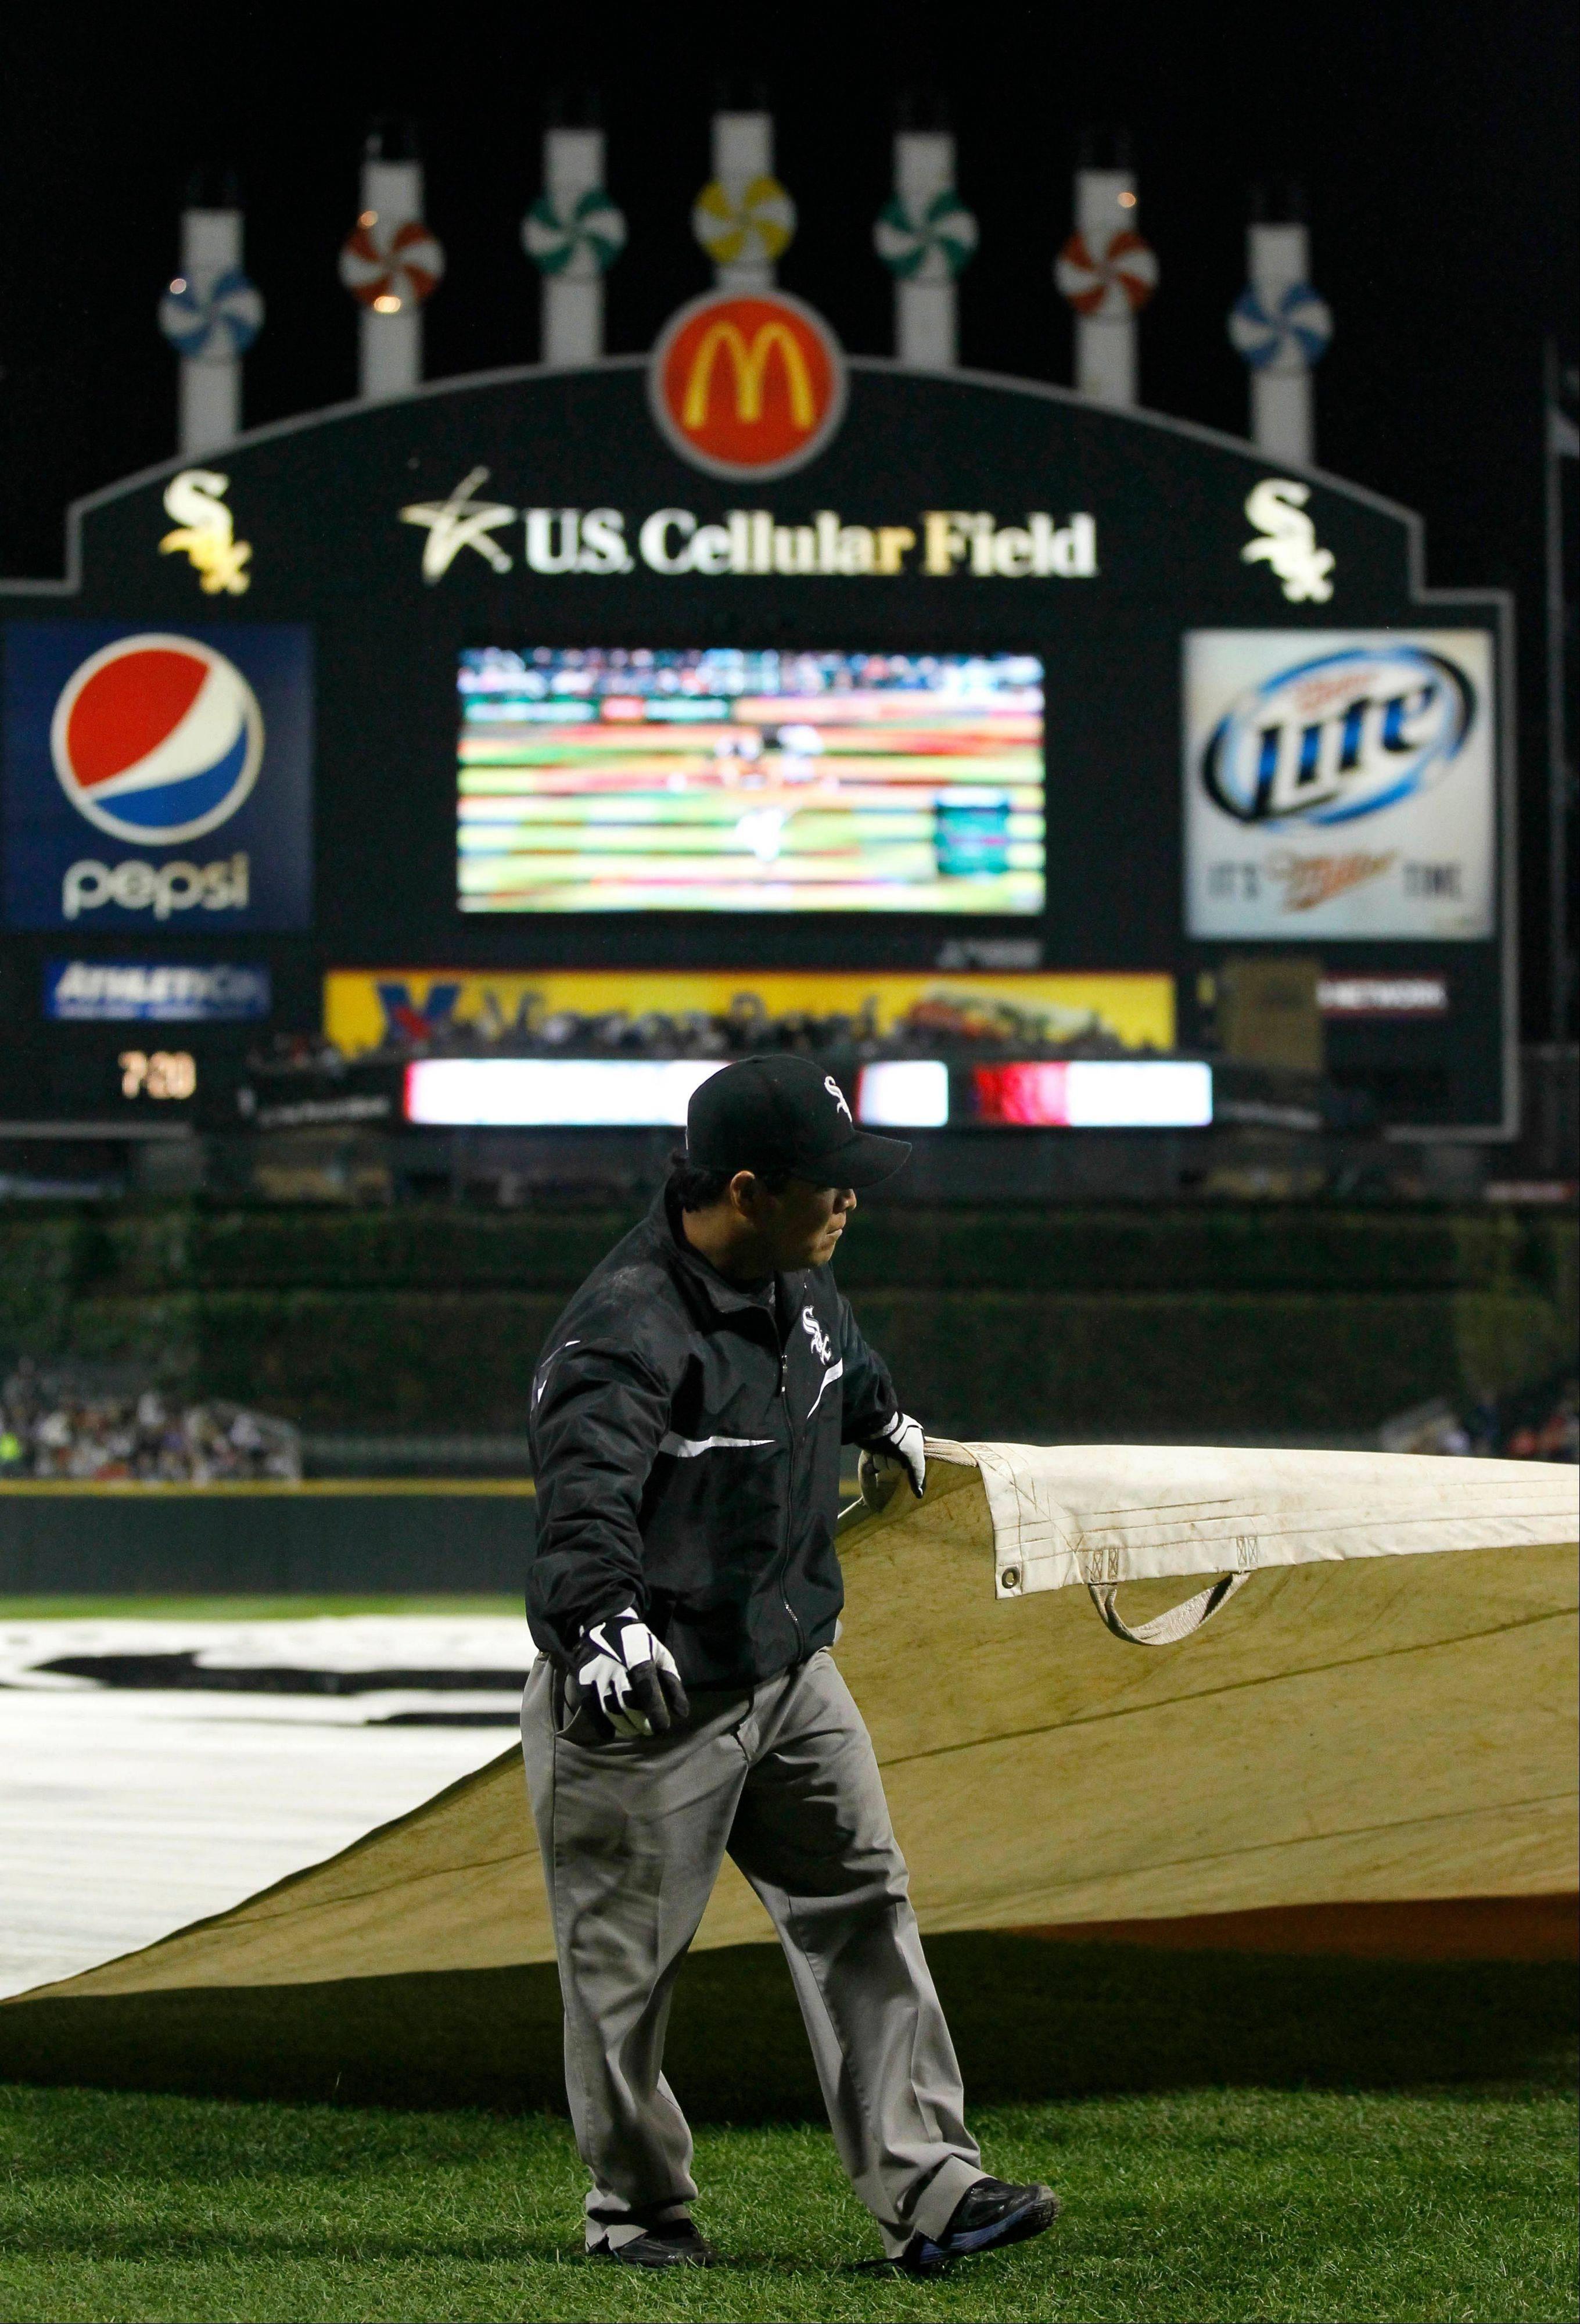 A member of the U.S. Cellular Field grounds crew helps cover the field as a rain delay postpones the start of Thursday�s game the Detroit Tigers. The game eventually was rained out.